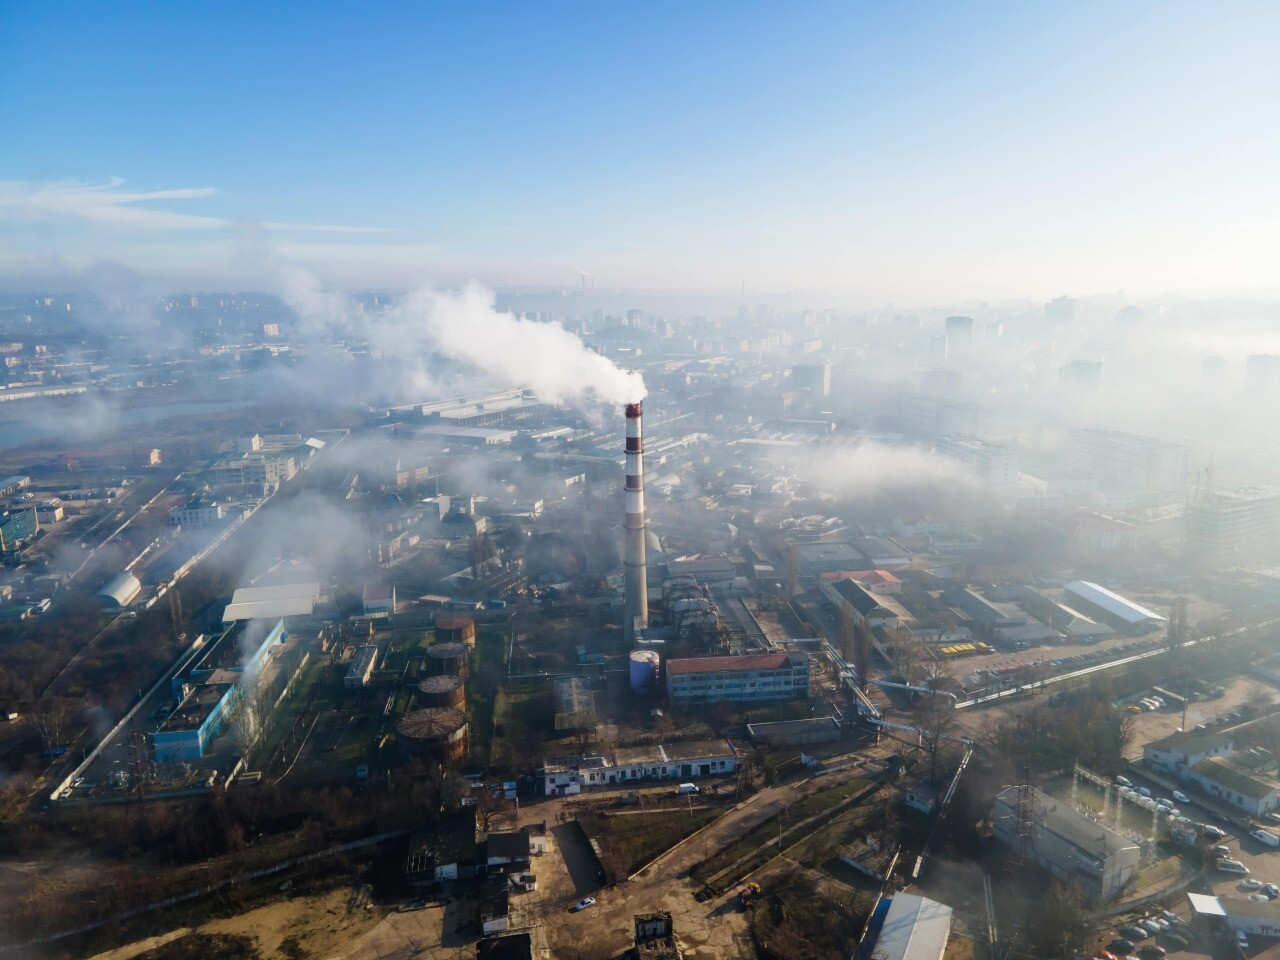 aerial-drone-view-chisinau-thermal-station-with-smoke-coming-out-tube-buildings-roads-fog-air-moldova-min.jpg